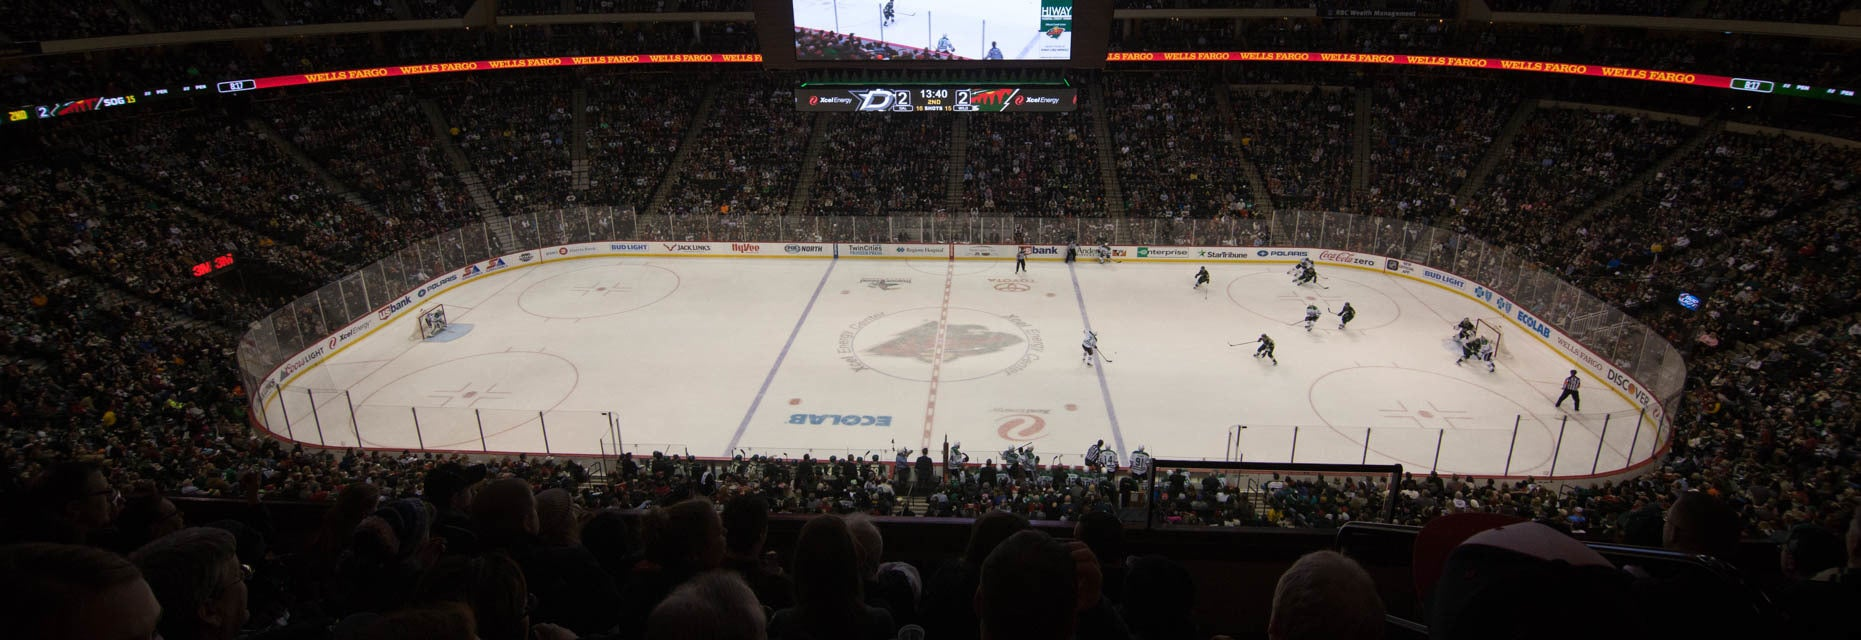 Seat view from St Paul Club Side